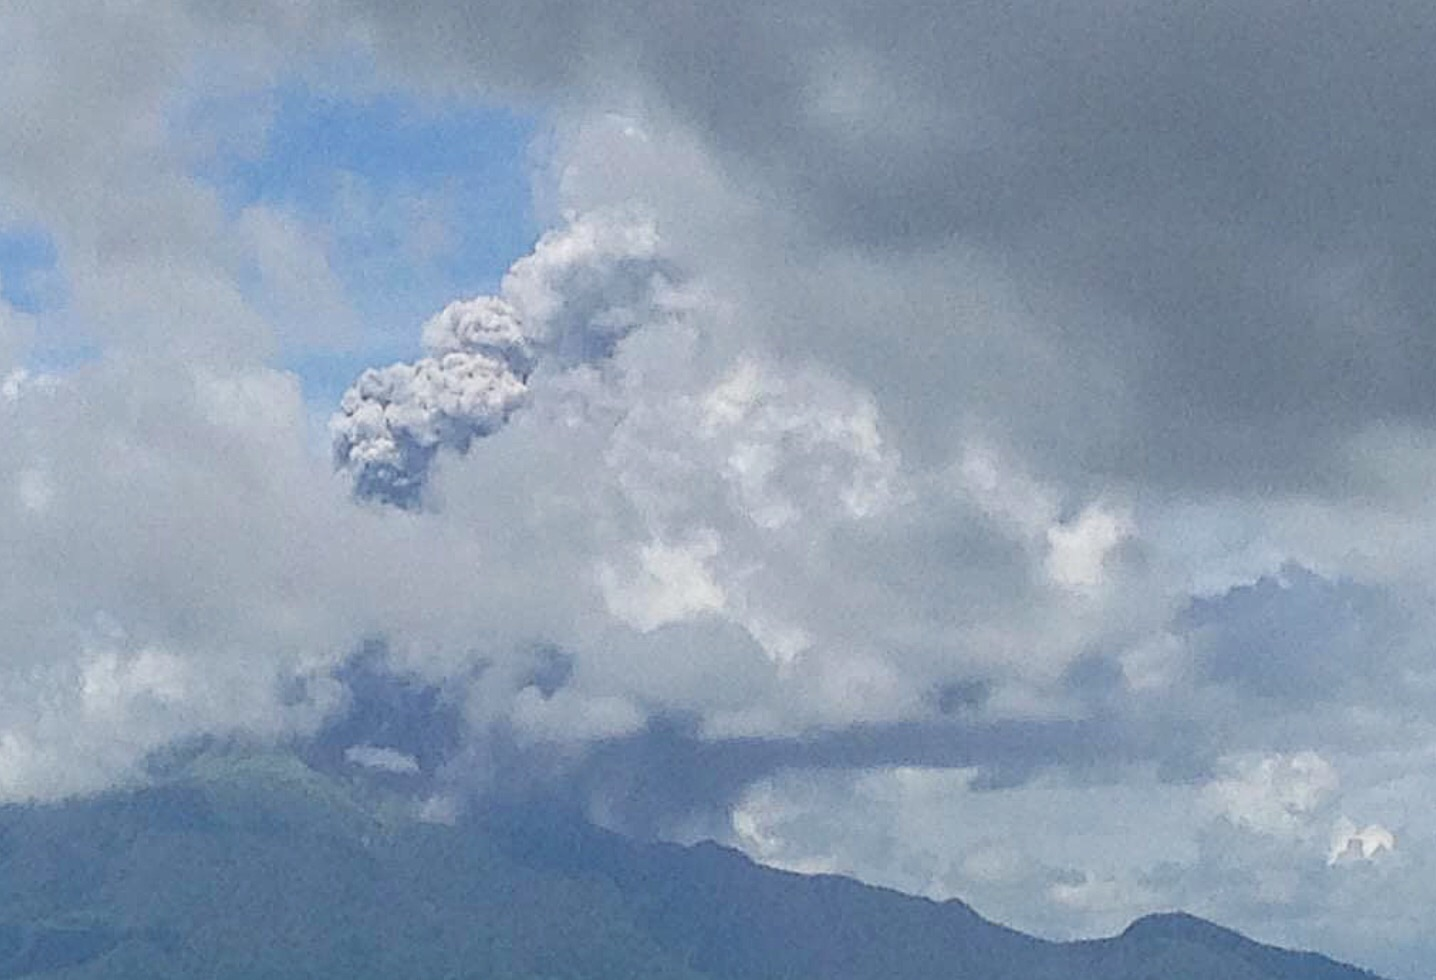 Phreatic explosion or ash explosion of Mount Bulusan in Sorsogon (Photo courtesy of Mon Lorilla / @SeekGoodLife / Twitter)